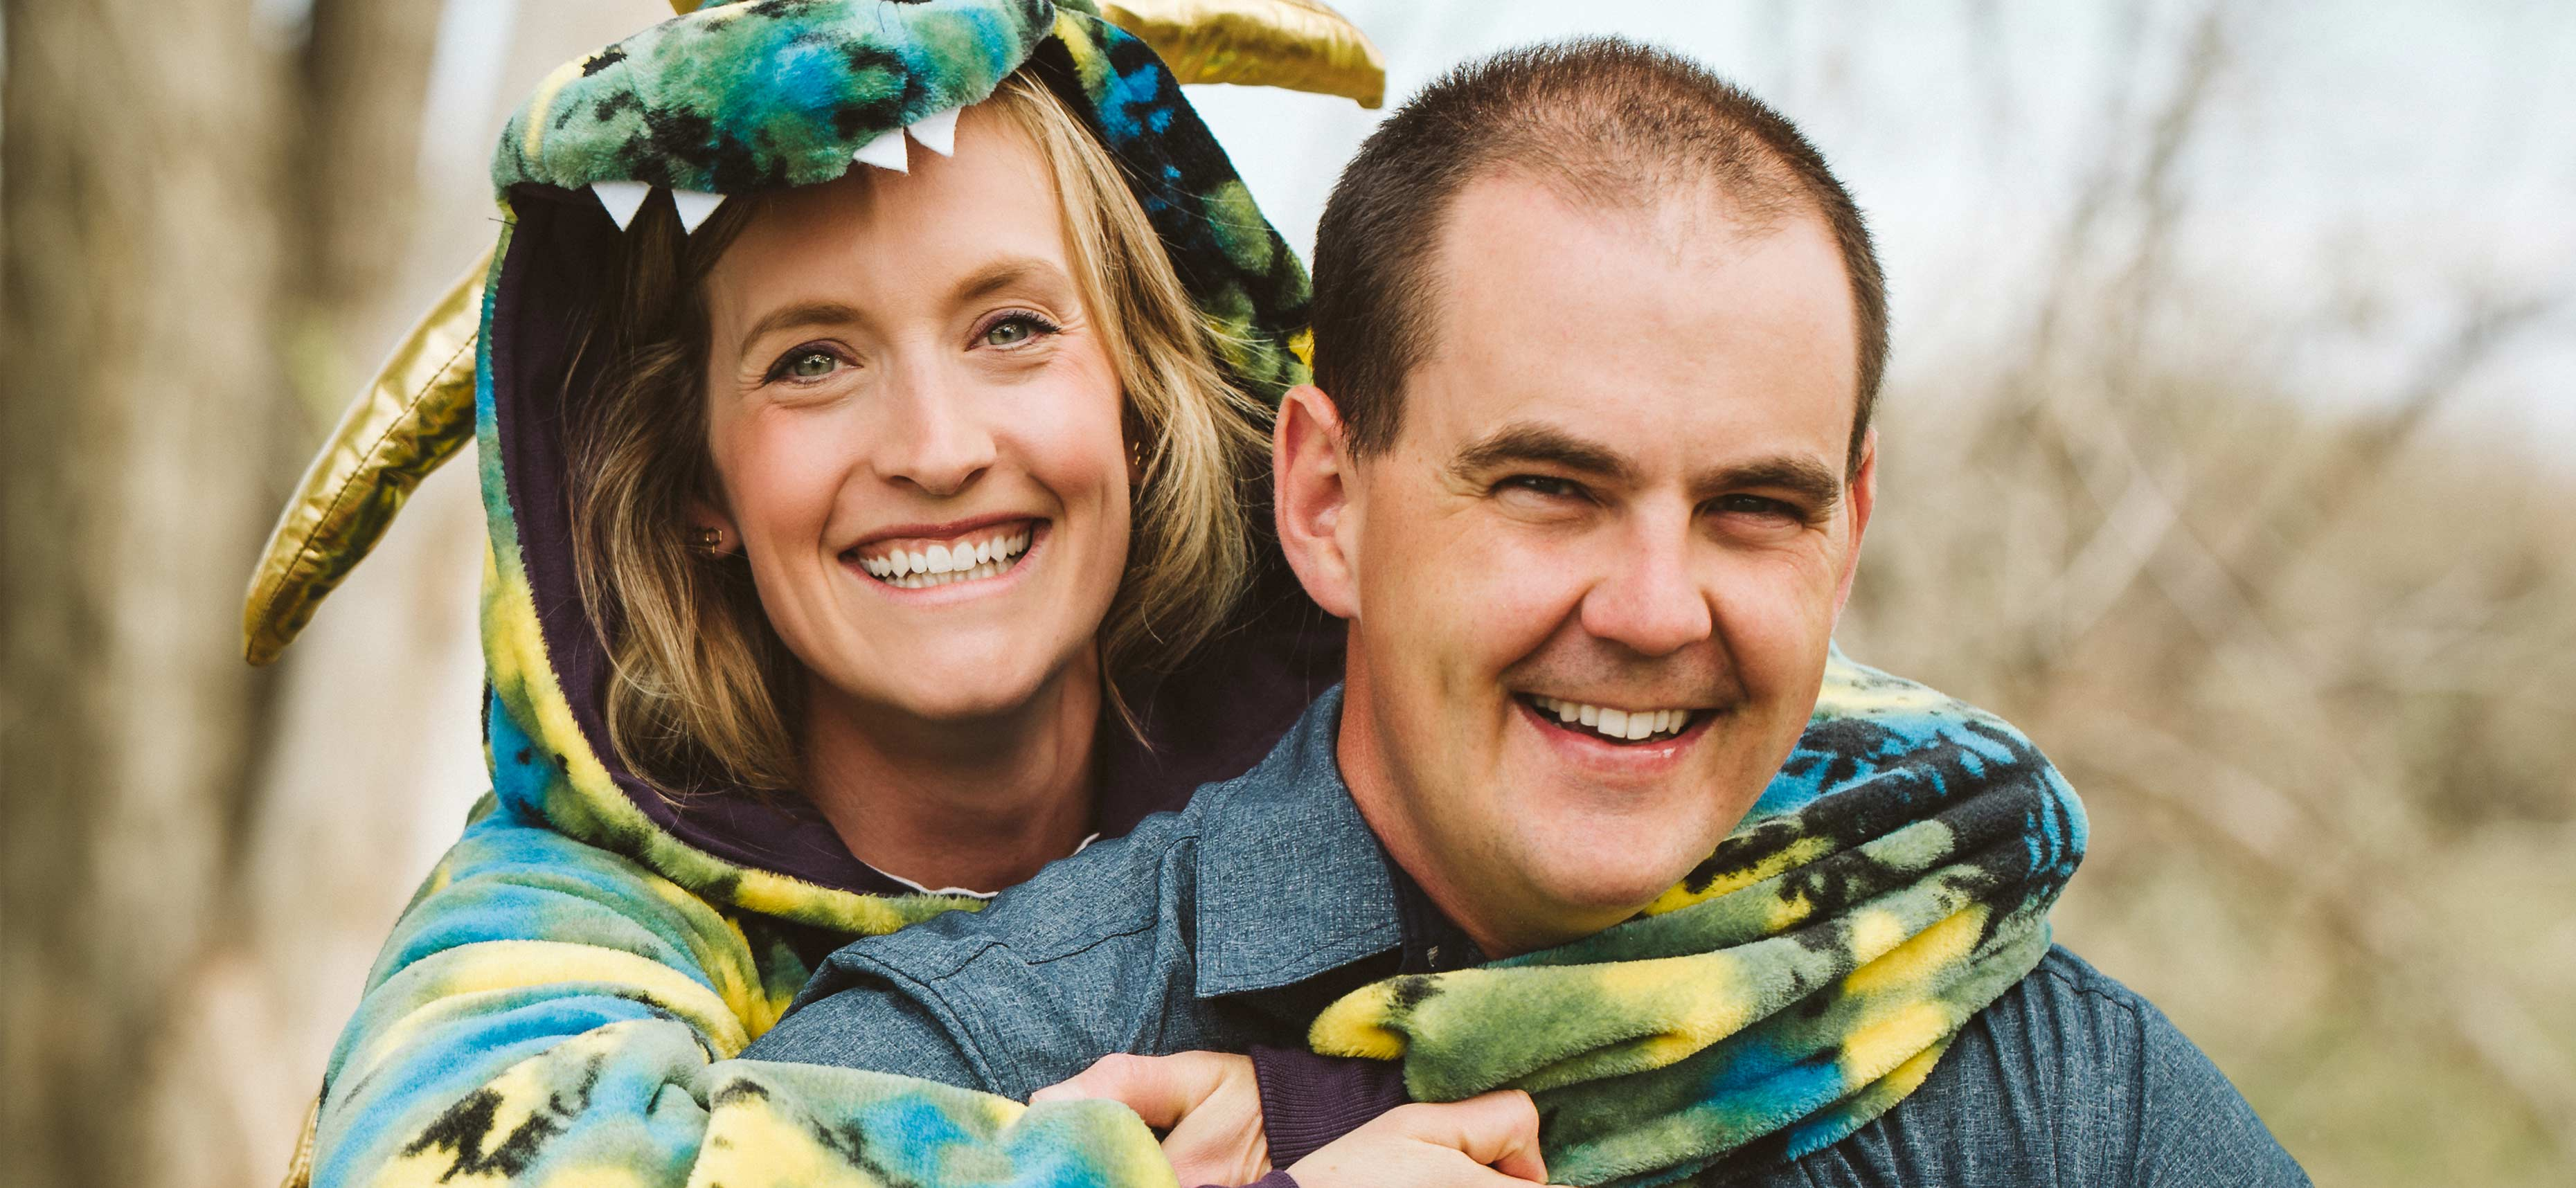 Medicine Hat Public School Division social worker Nick Paquin and his wife, Ashley